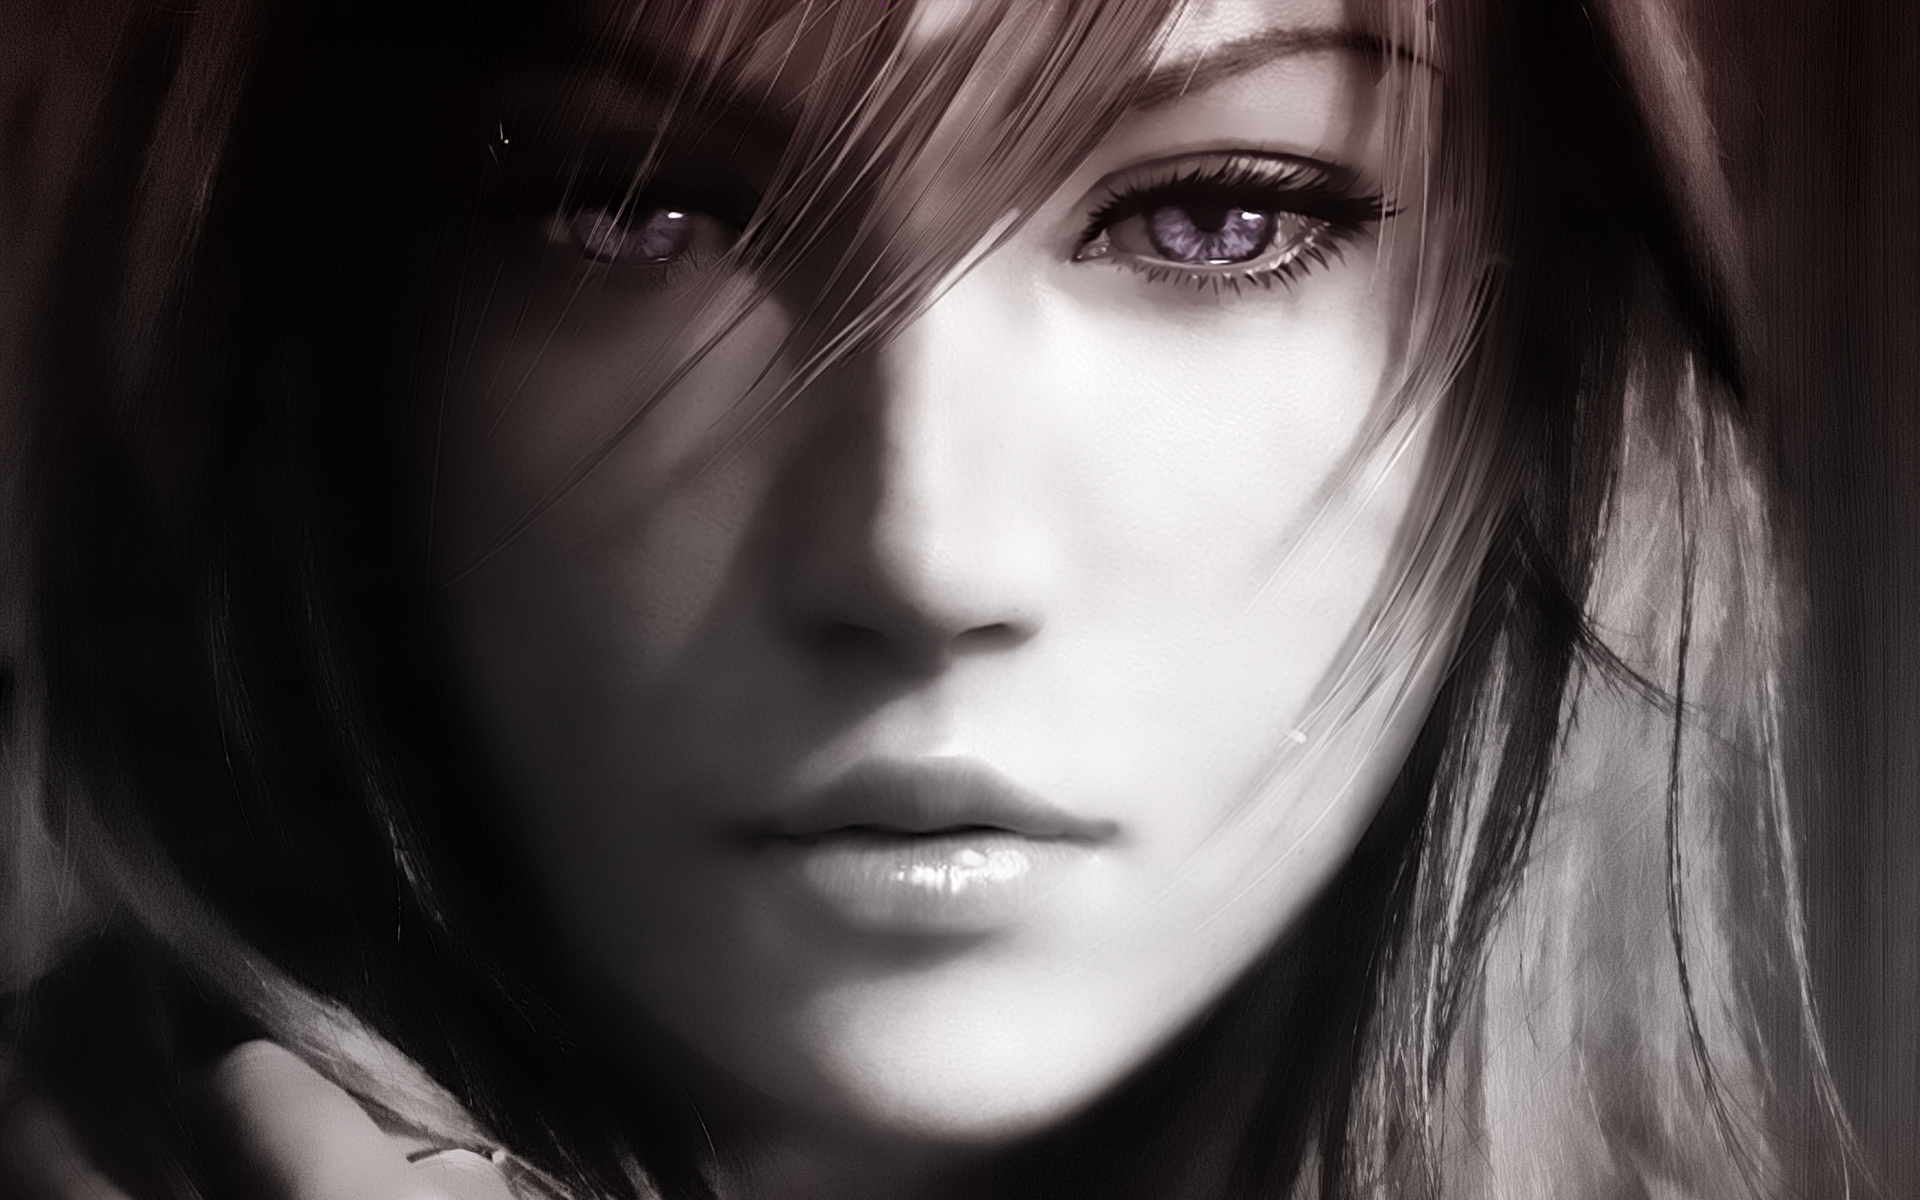 lightning final fantasy xiii game hd wallpaper 1920x1200